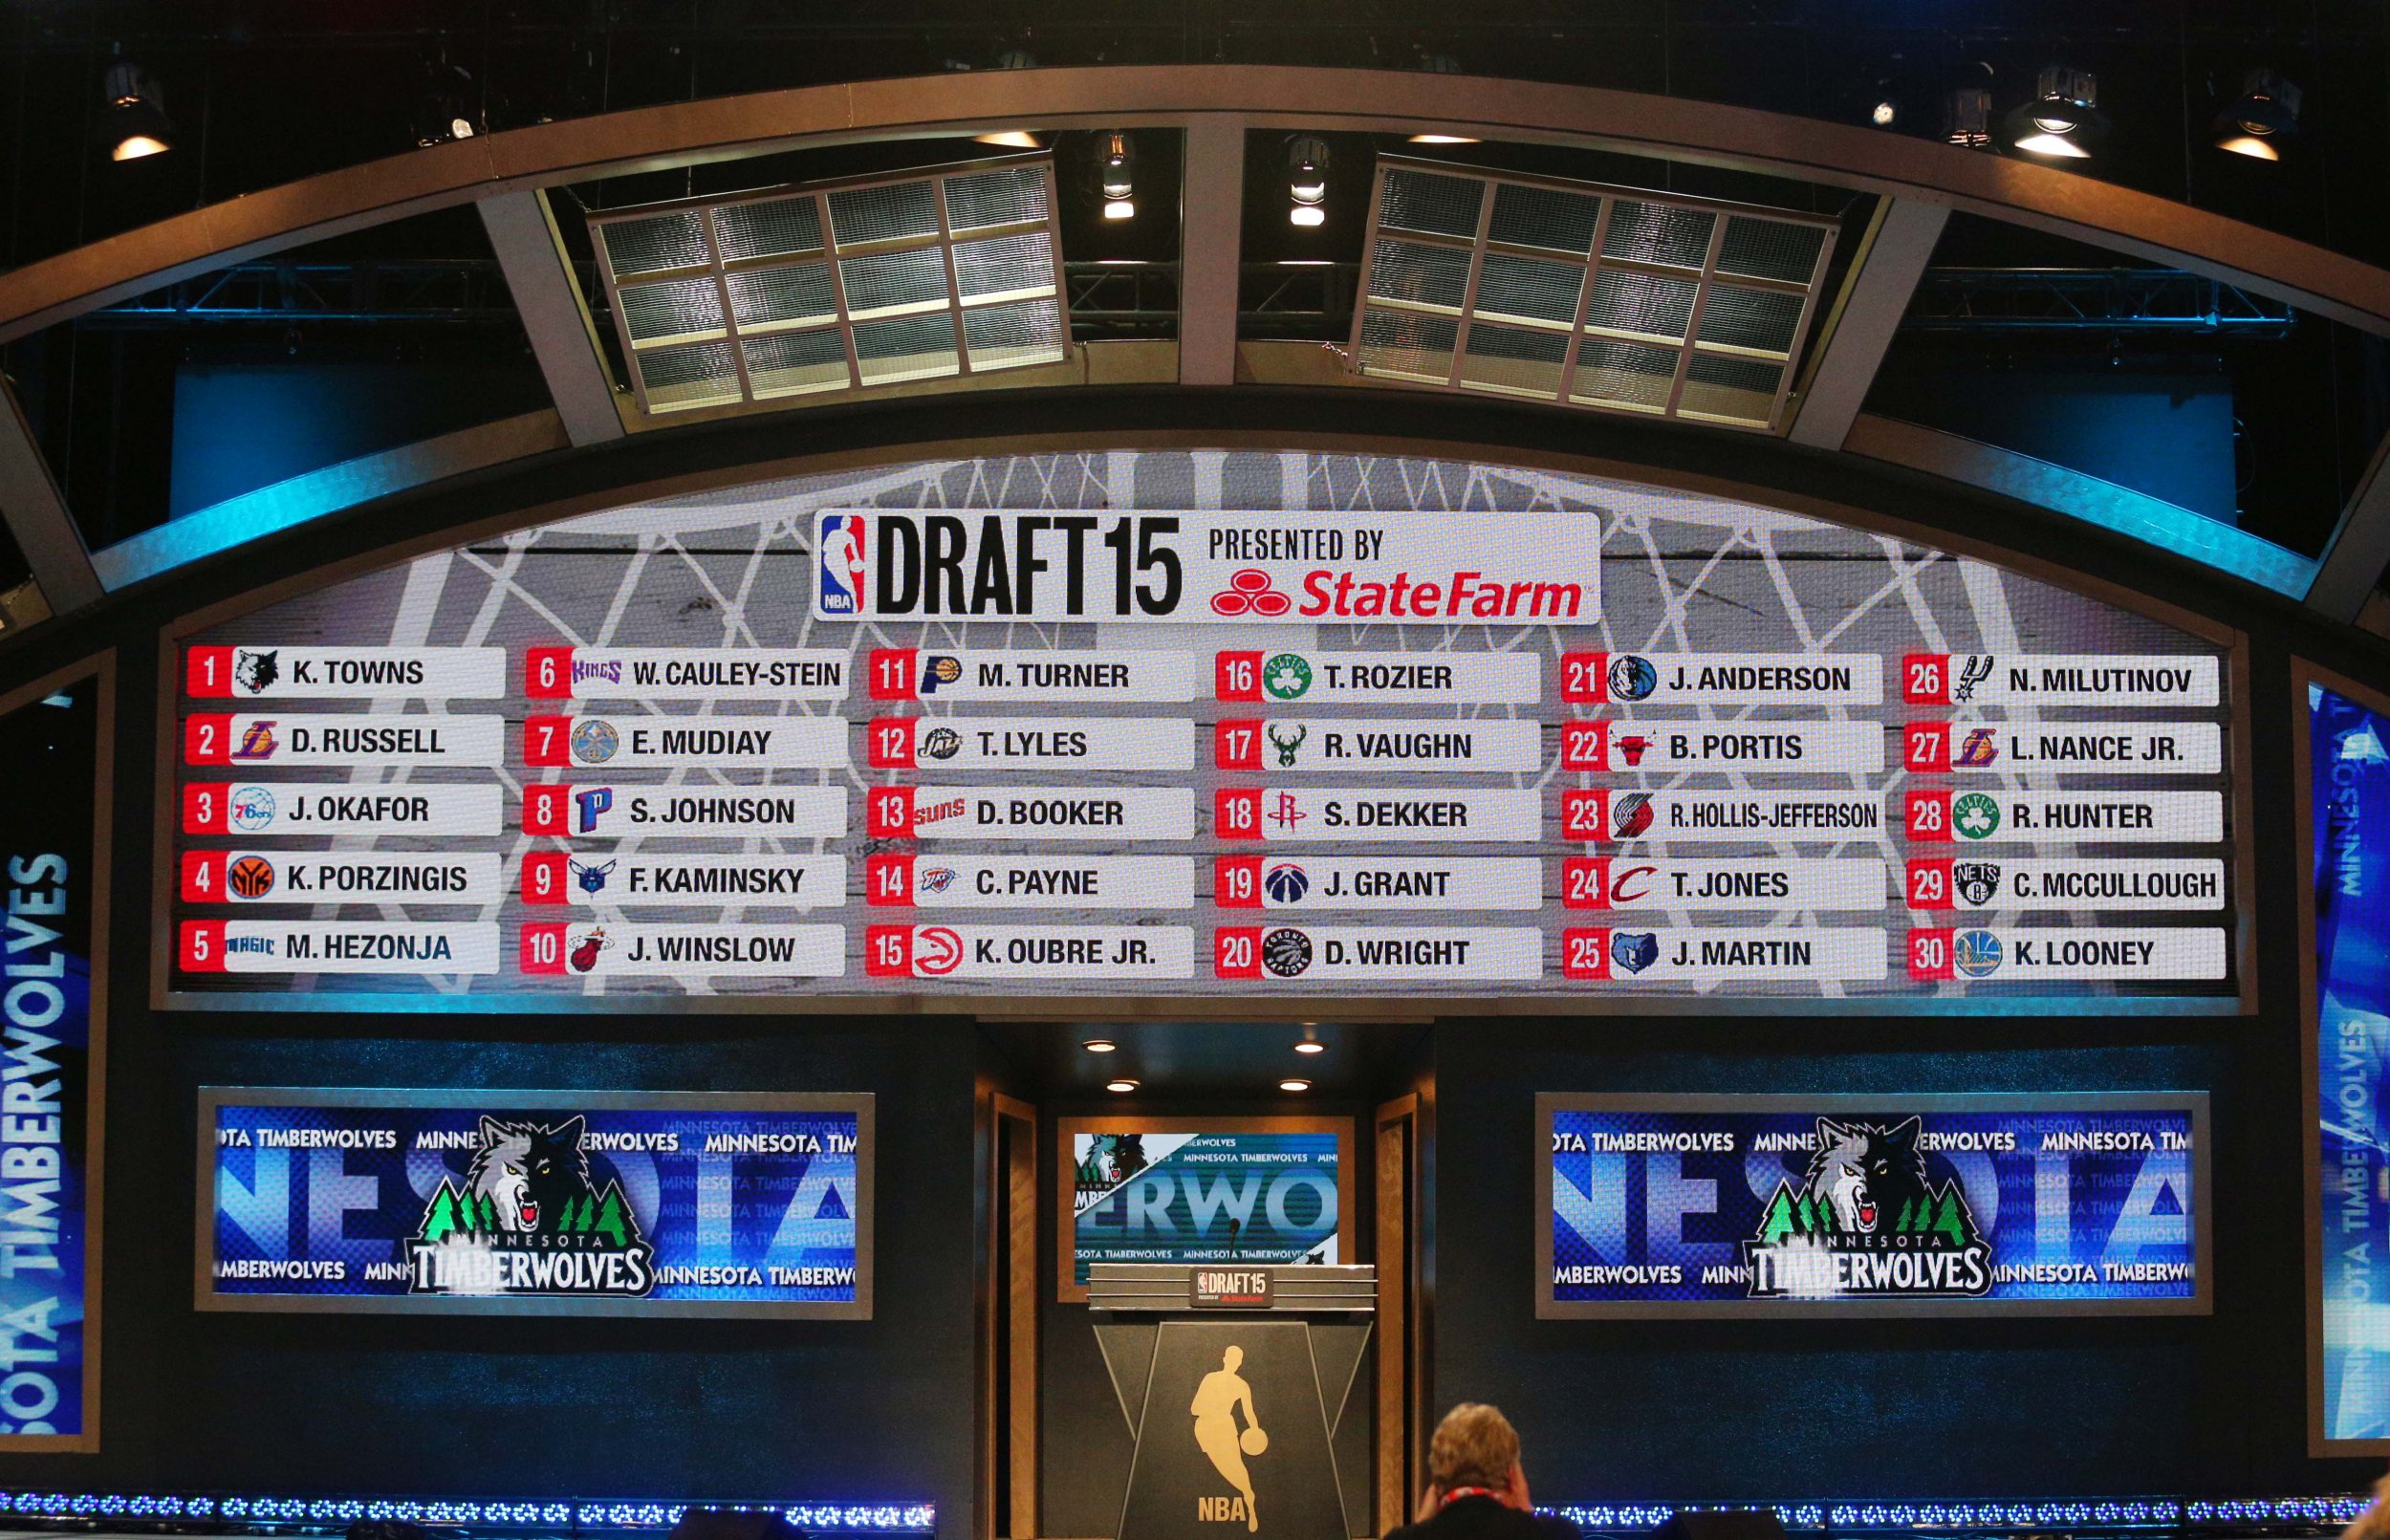 nba draft blows minds budgets and gaskets